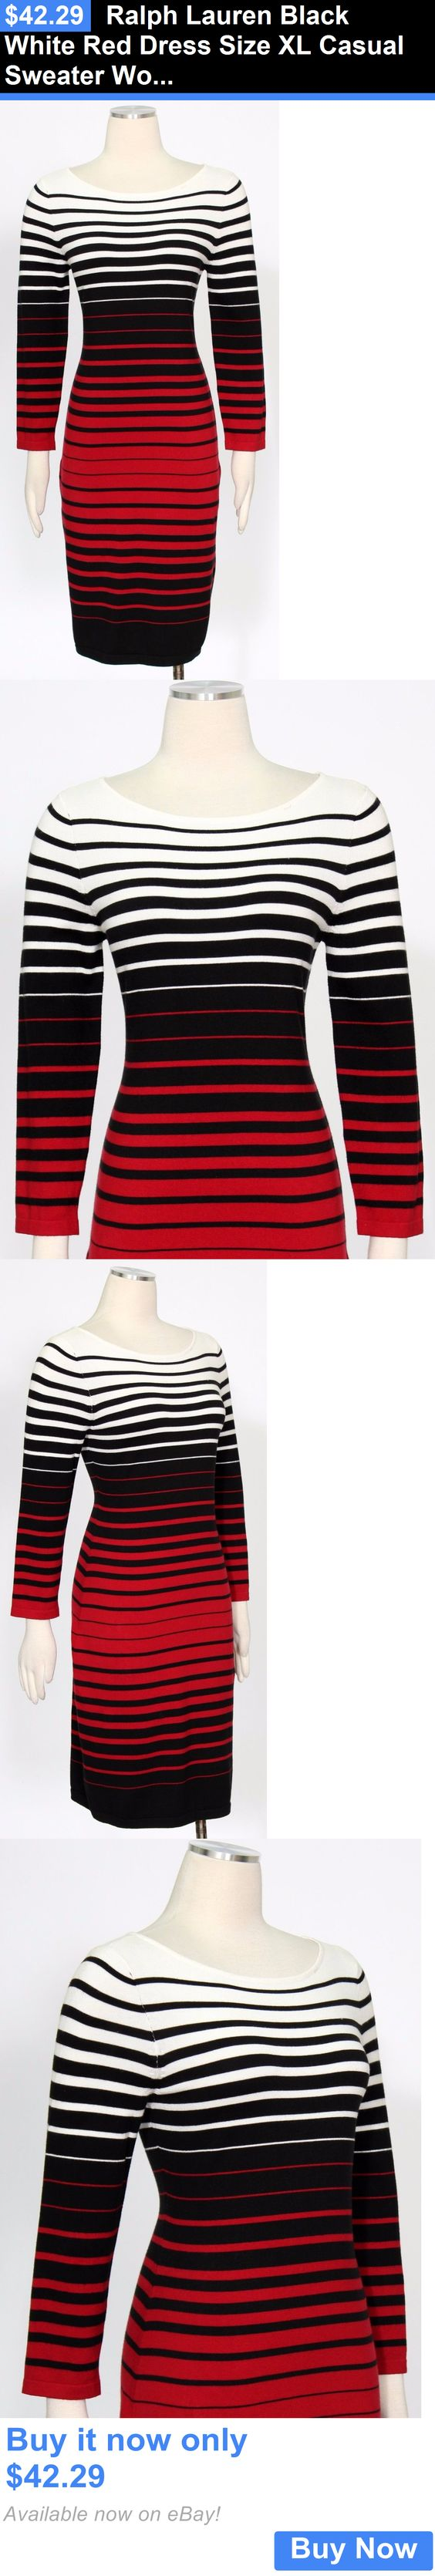 clothing and accessories: Ralph Lauren Black White Red Dress Size Xl Casual Sweater Womens New* BUY IT NOW ONLY: $42.29